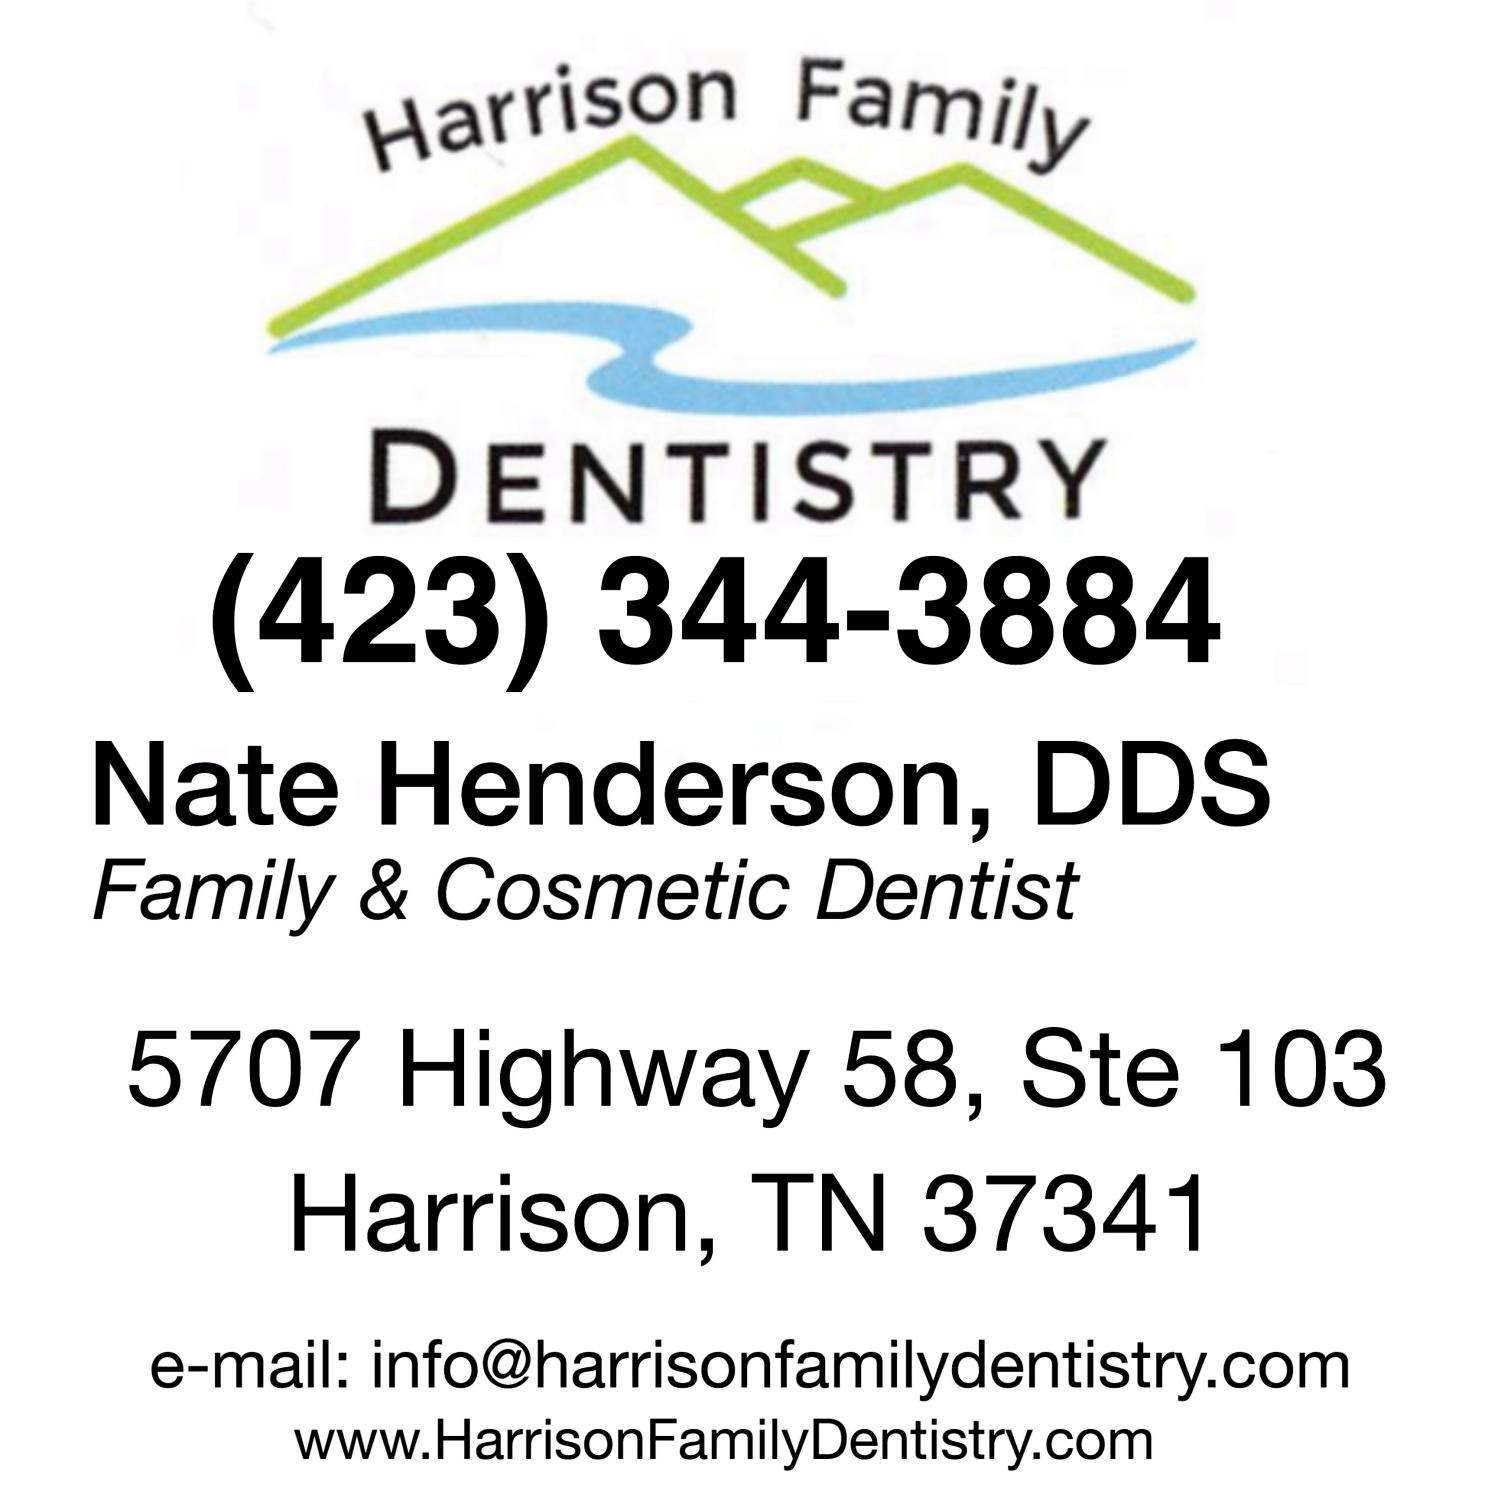 HARRISON FAMILY DENTISTRY AD